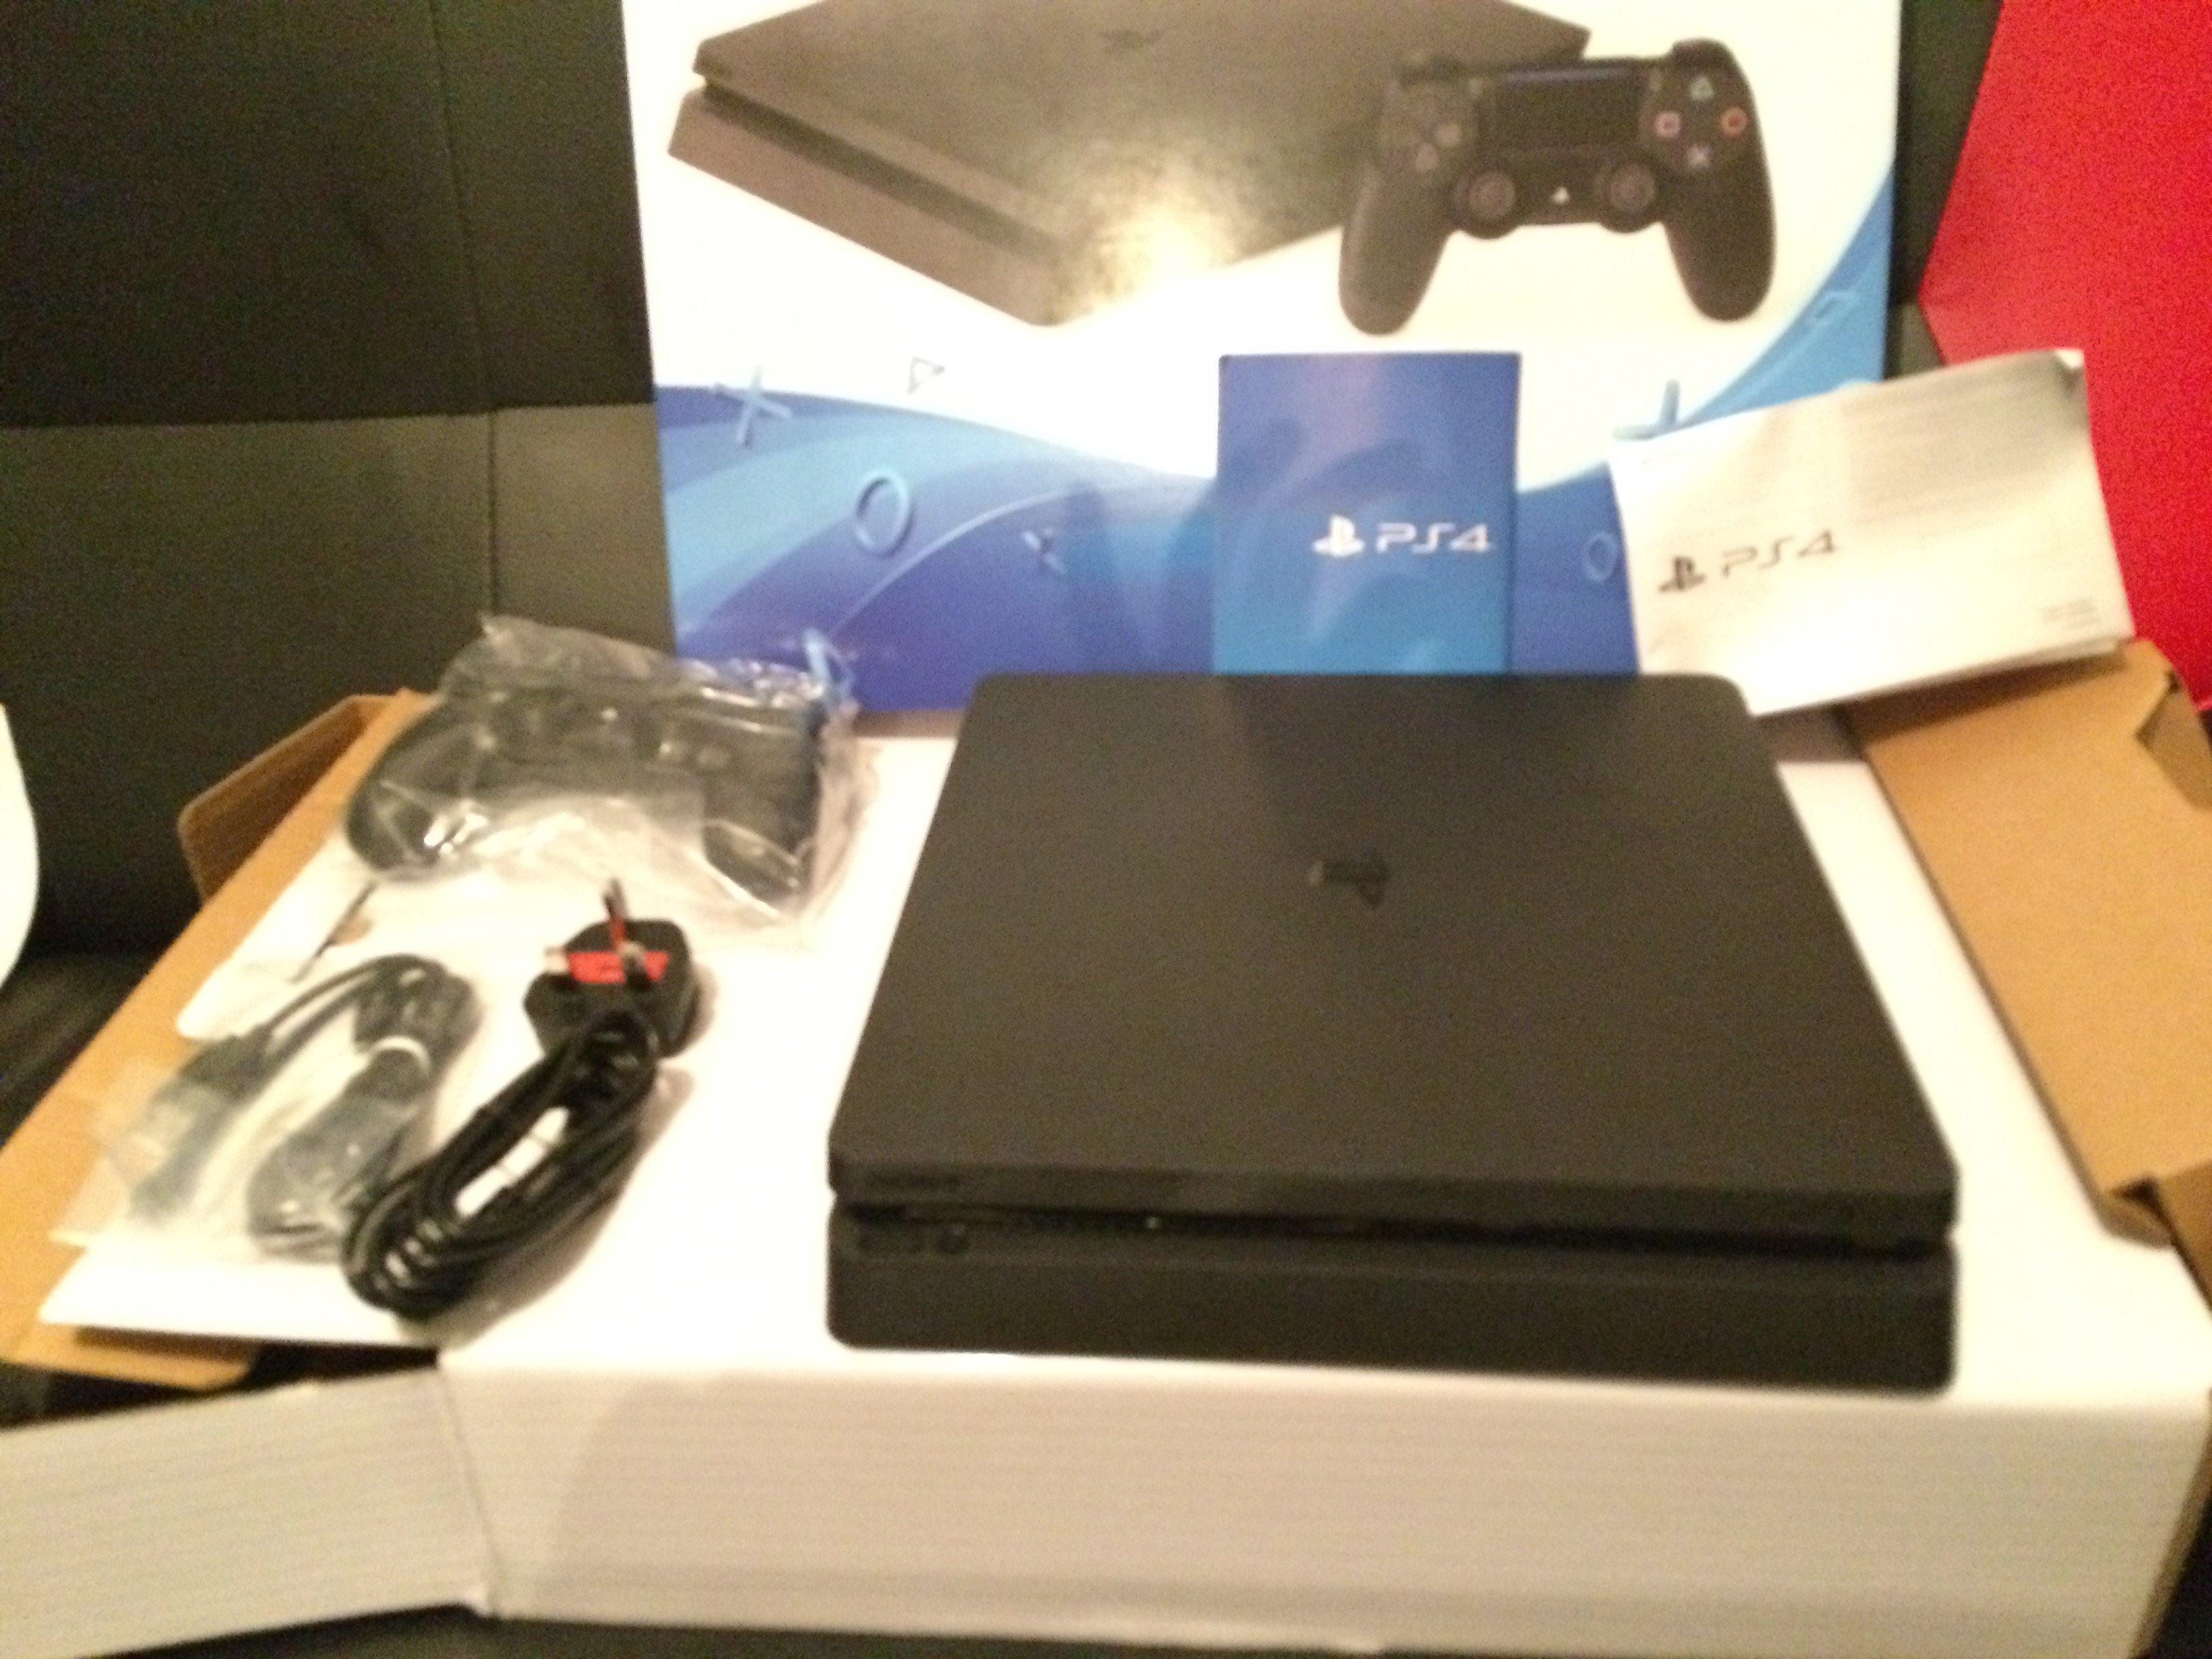 PS4 Slim Console Inside The Box1